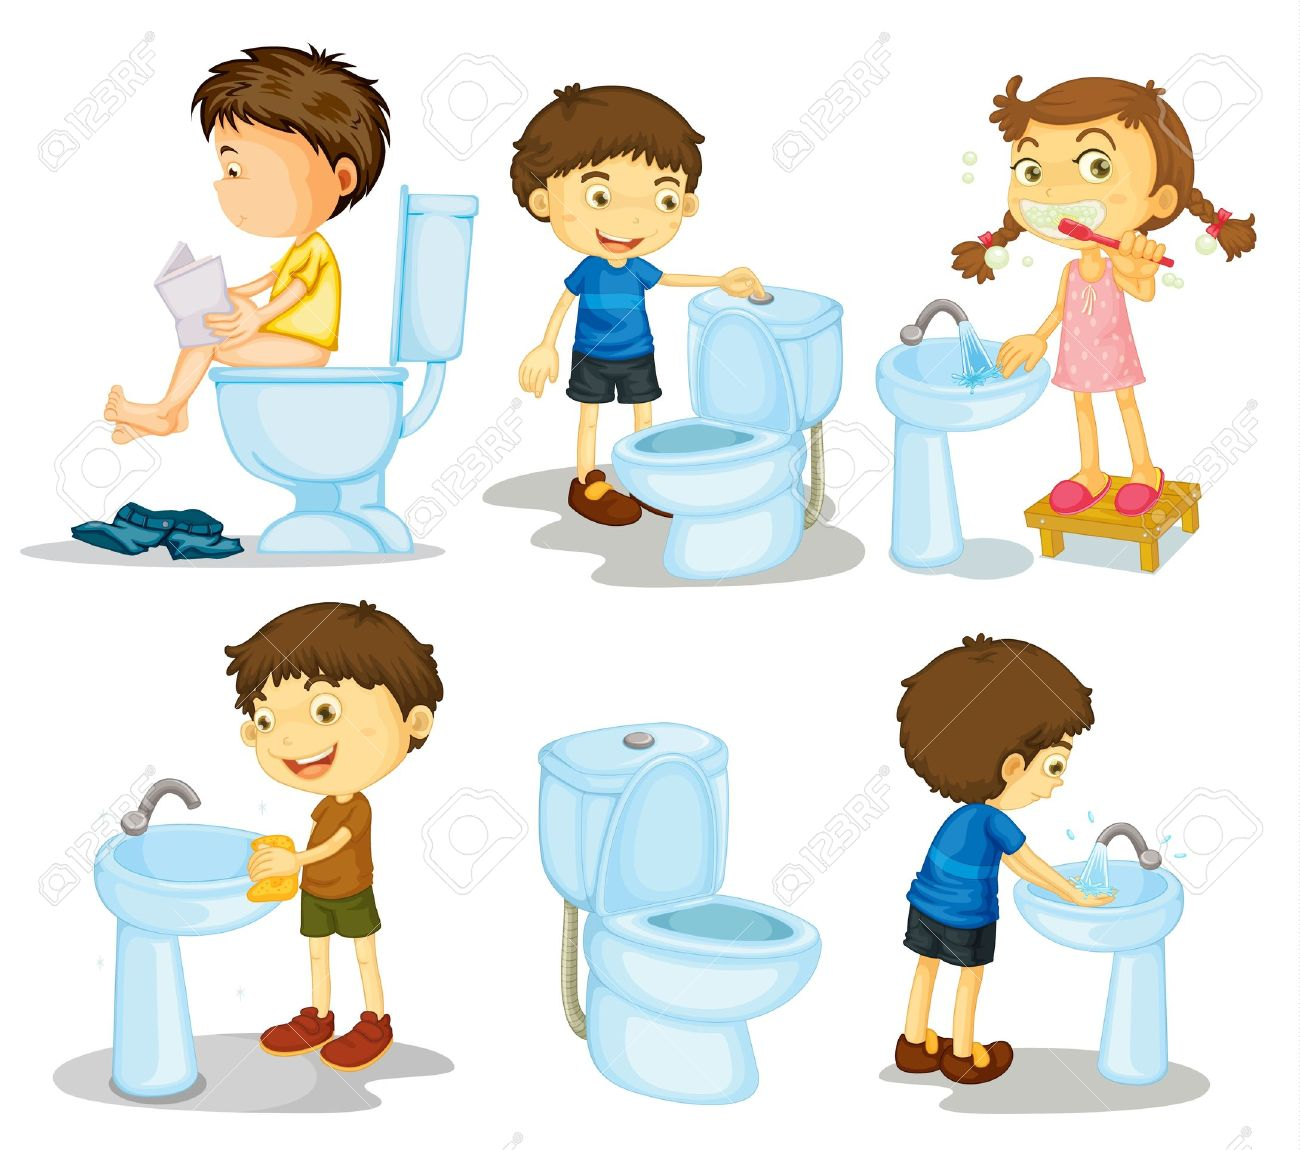 Bathroom drawing for kids - Bathroom Cartoon Illustration Of A Kids And Bathroom Accessories On A White Background